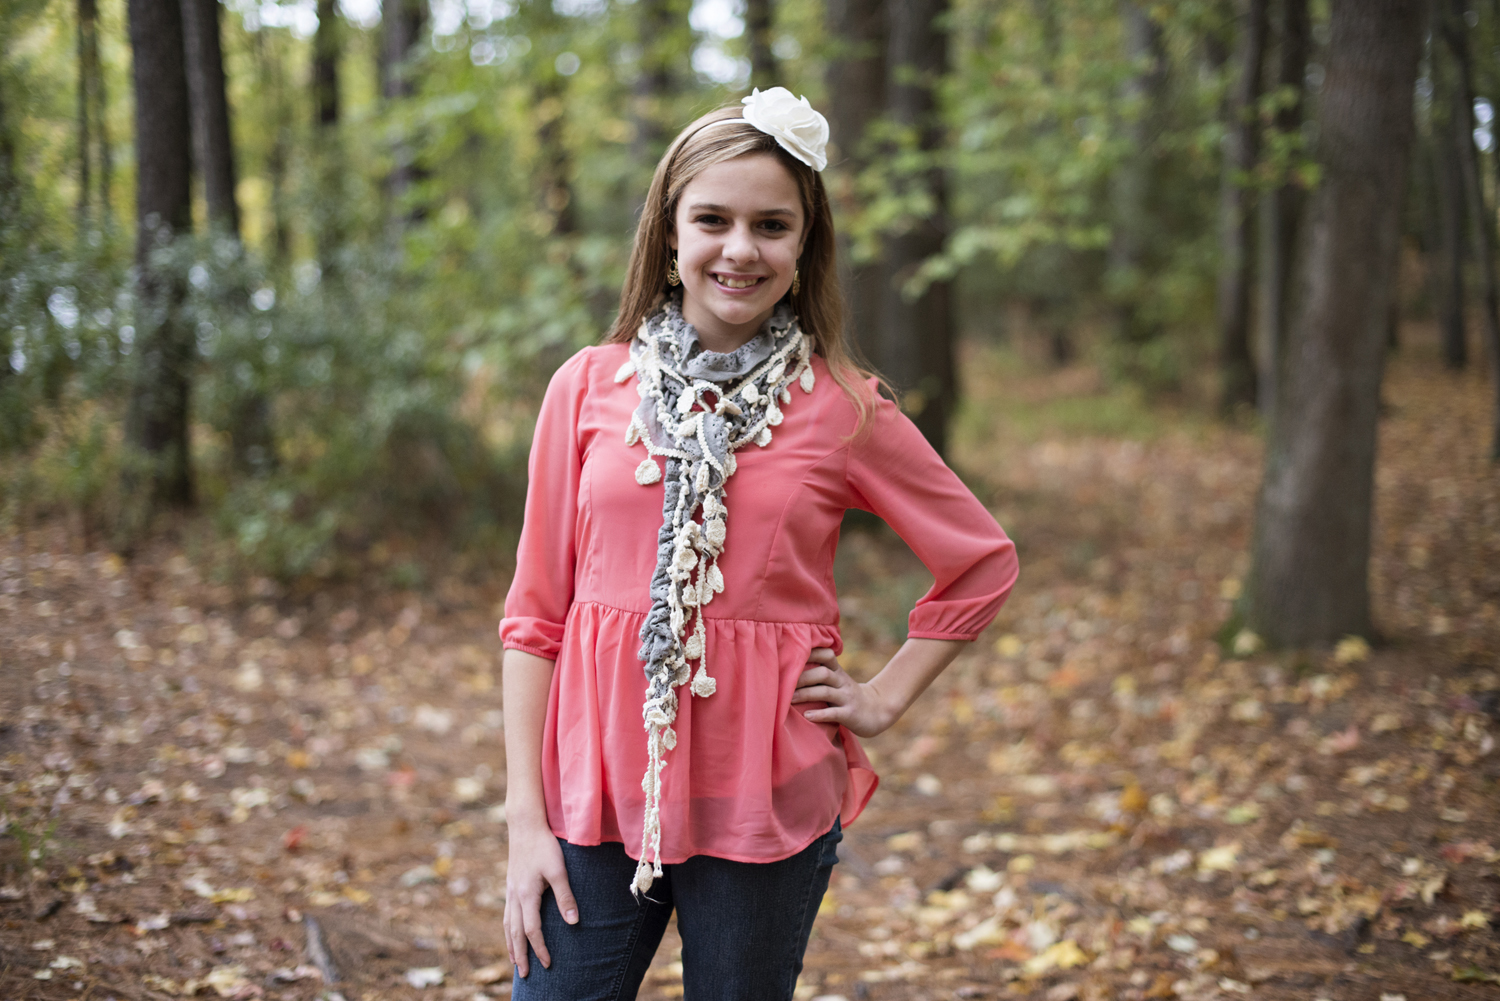 Christmas card outfit ideas - pink, gray, and white